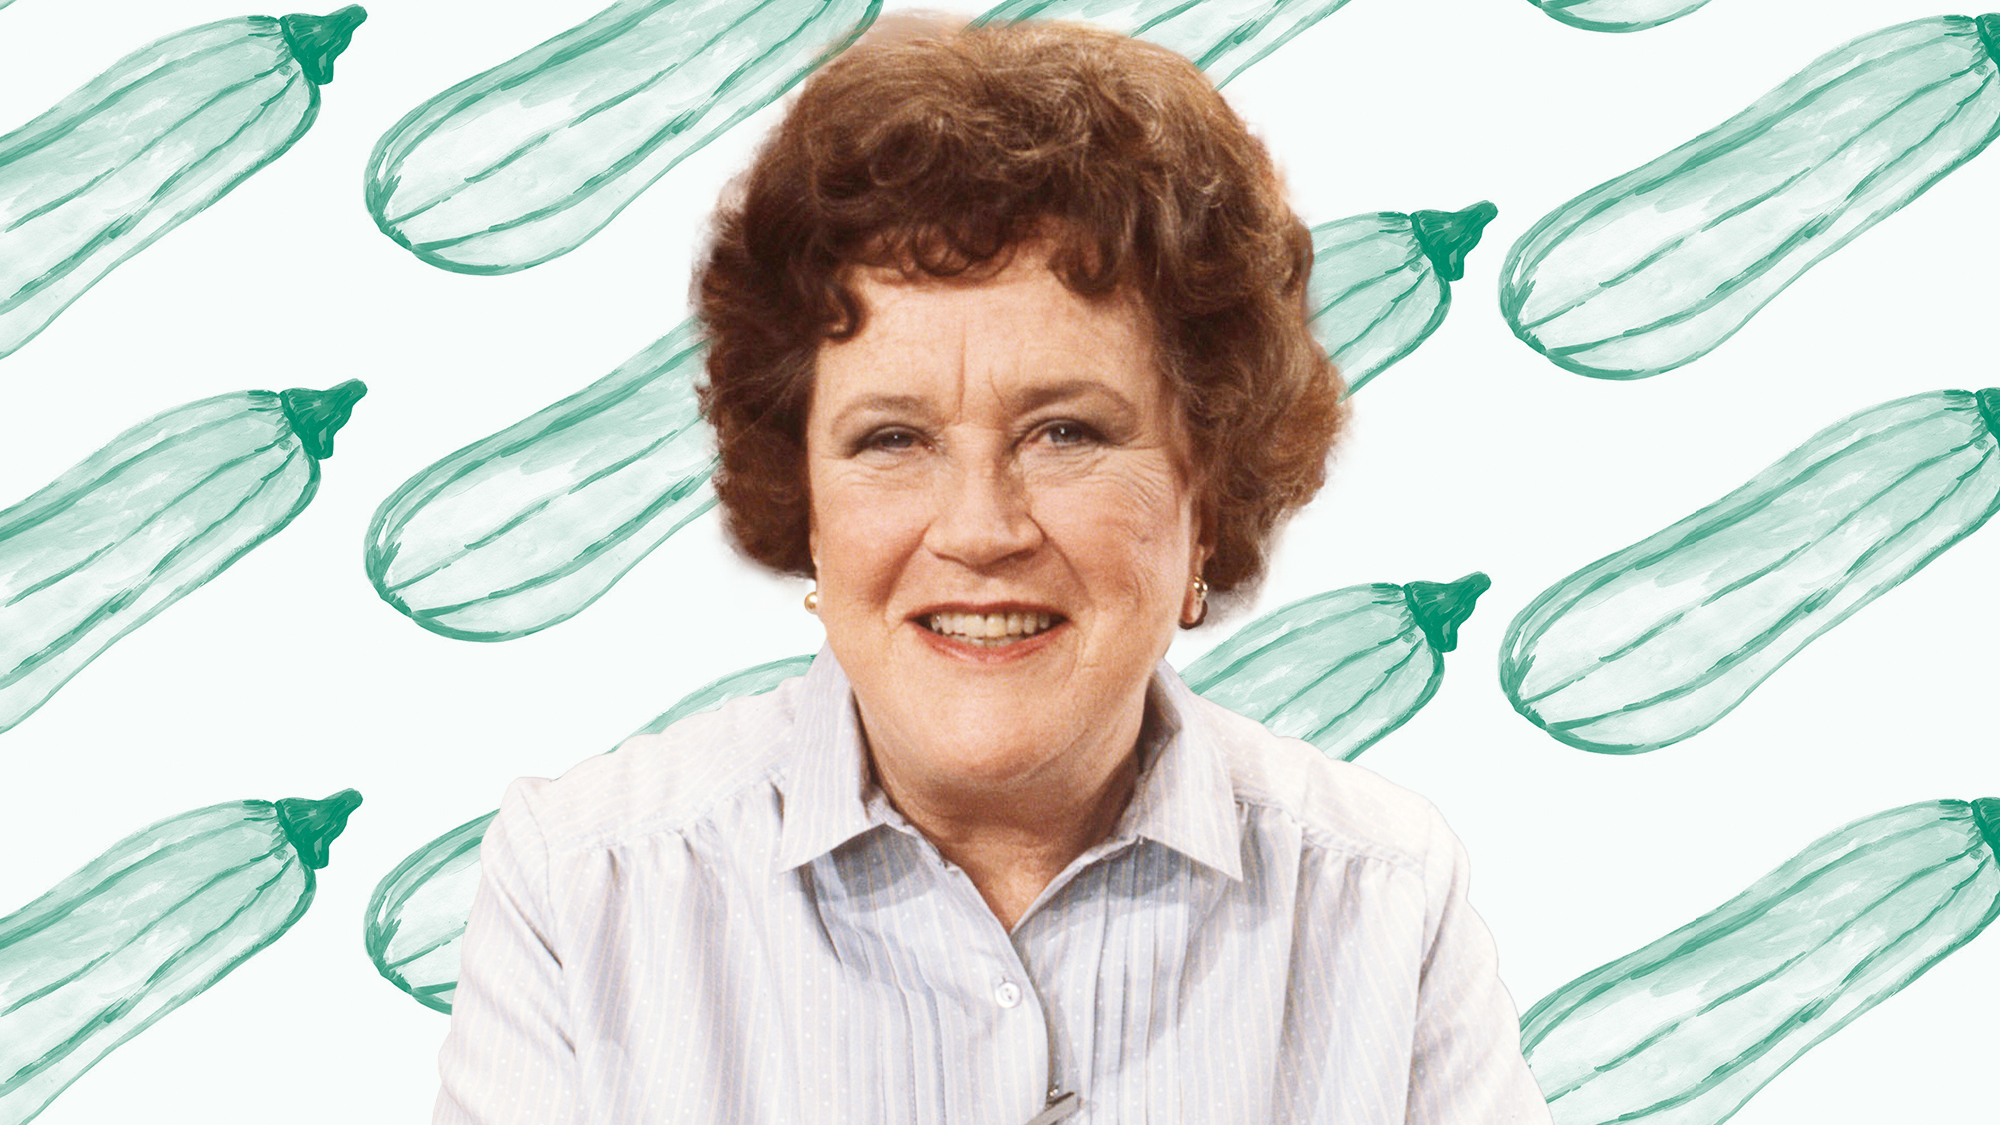 Julia Child on a designed background of zucchinis